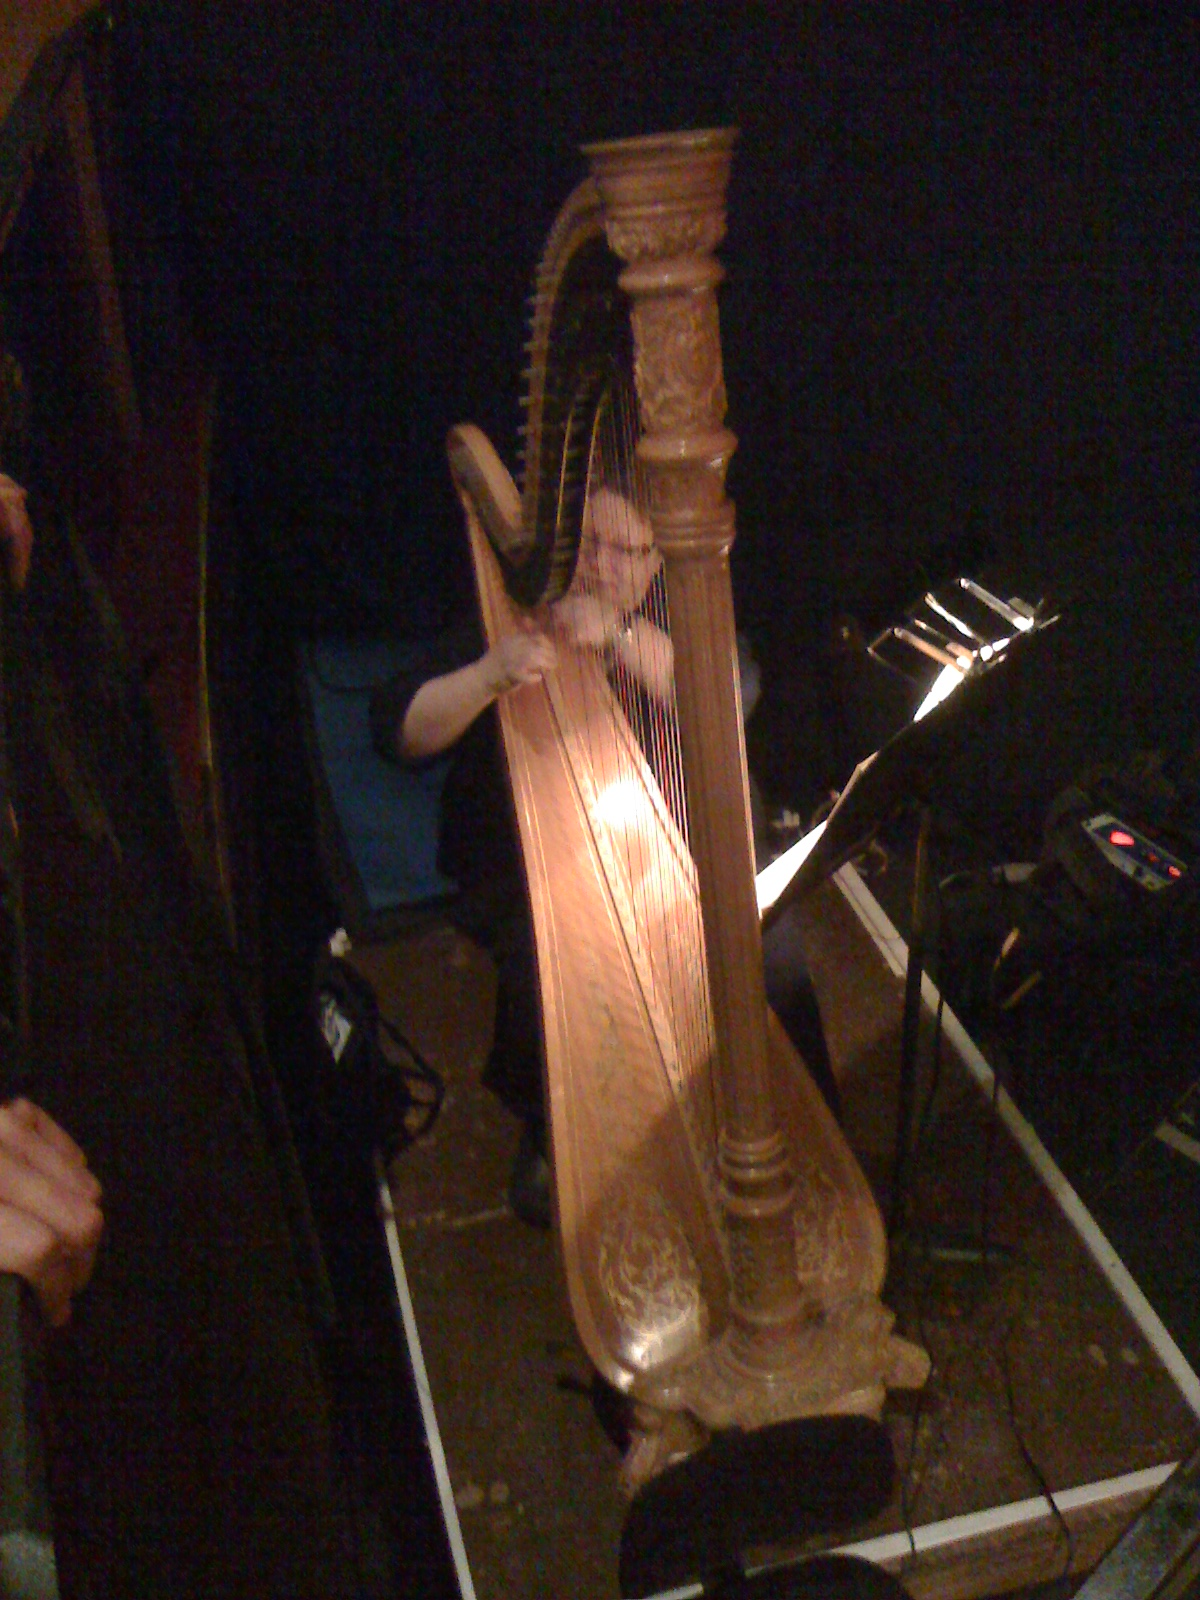 A Harpist Warms Up